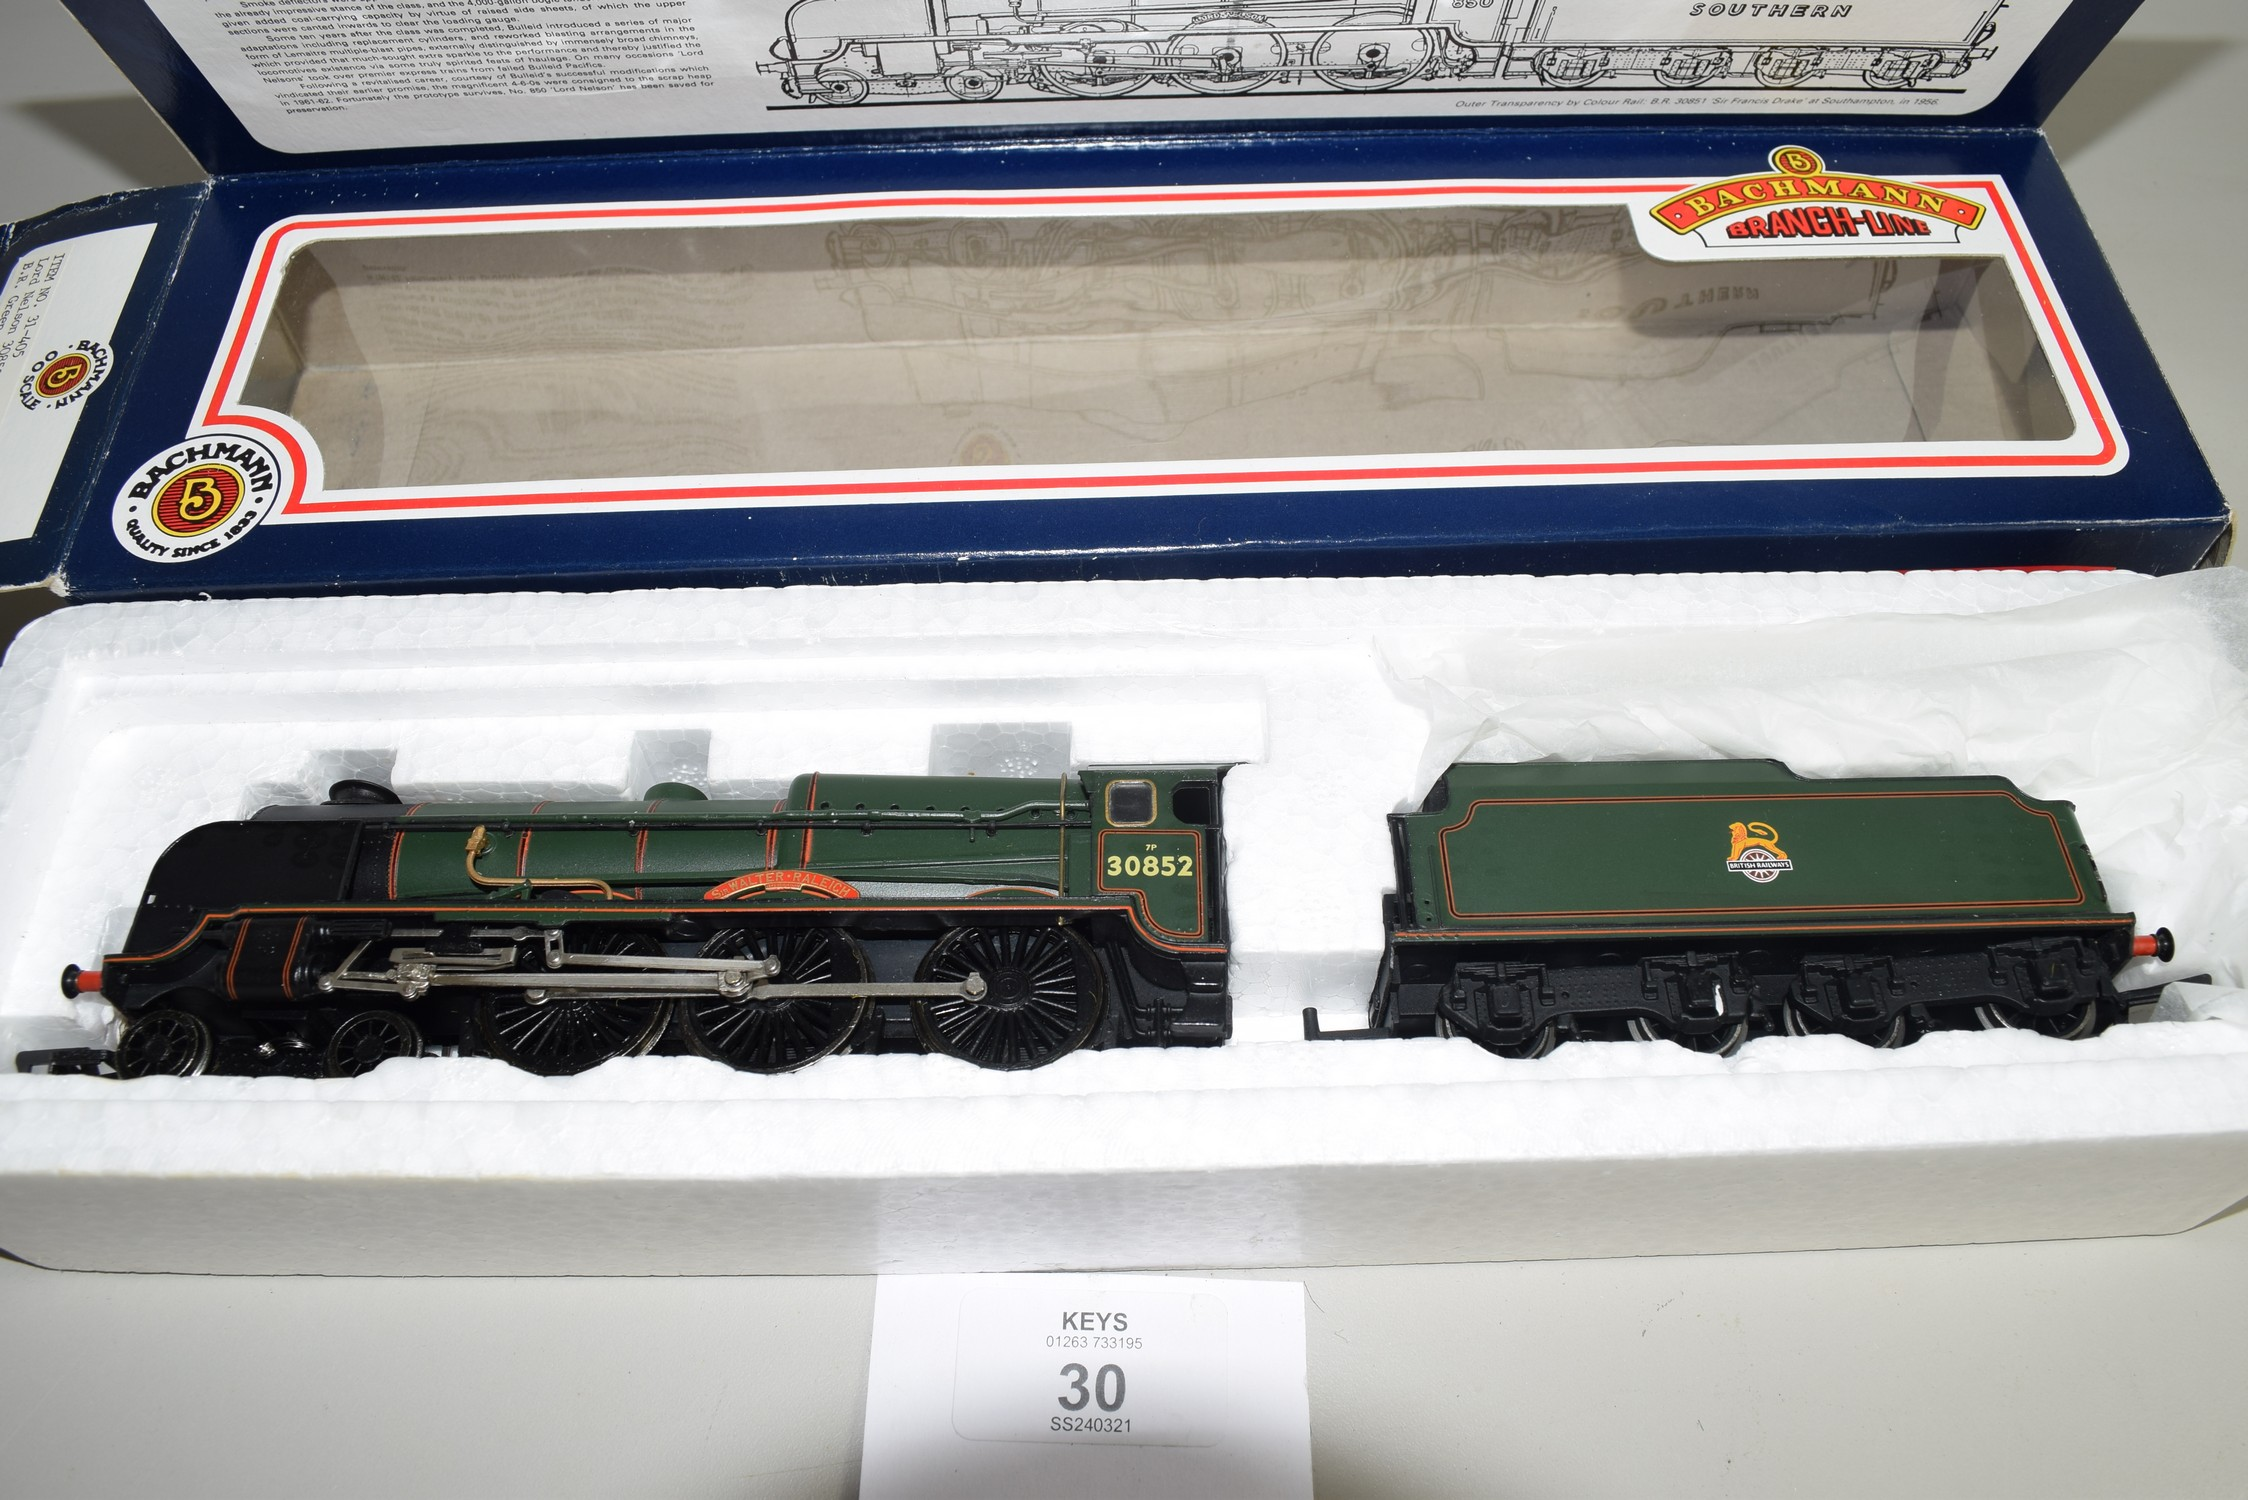 """Boxed Bachmann 00 gauge 31-405 Lord Nelson """"Sir Walter Raleigh"""", BR green No 30852 locomotive - Image 2 of 4"""